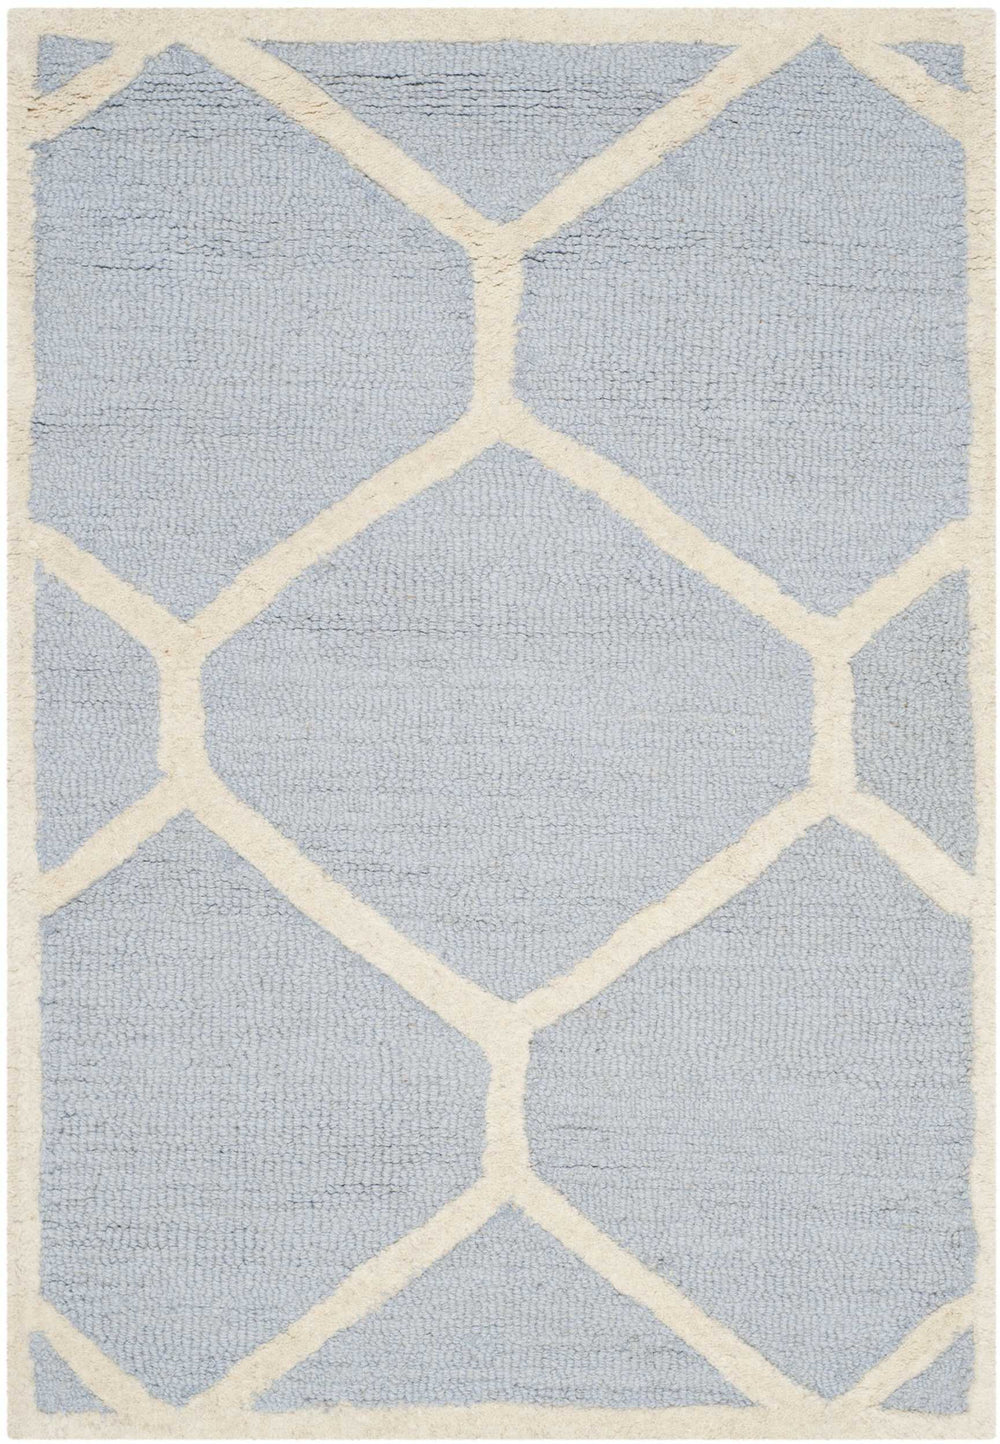 Safavieh Cambridge CAM144 Area Rug